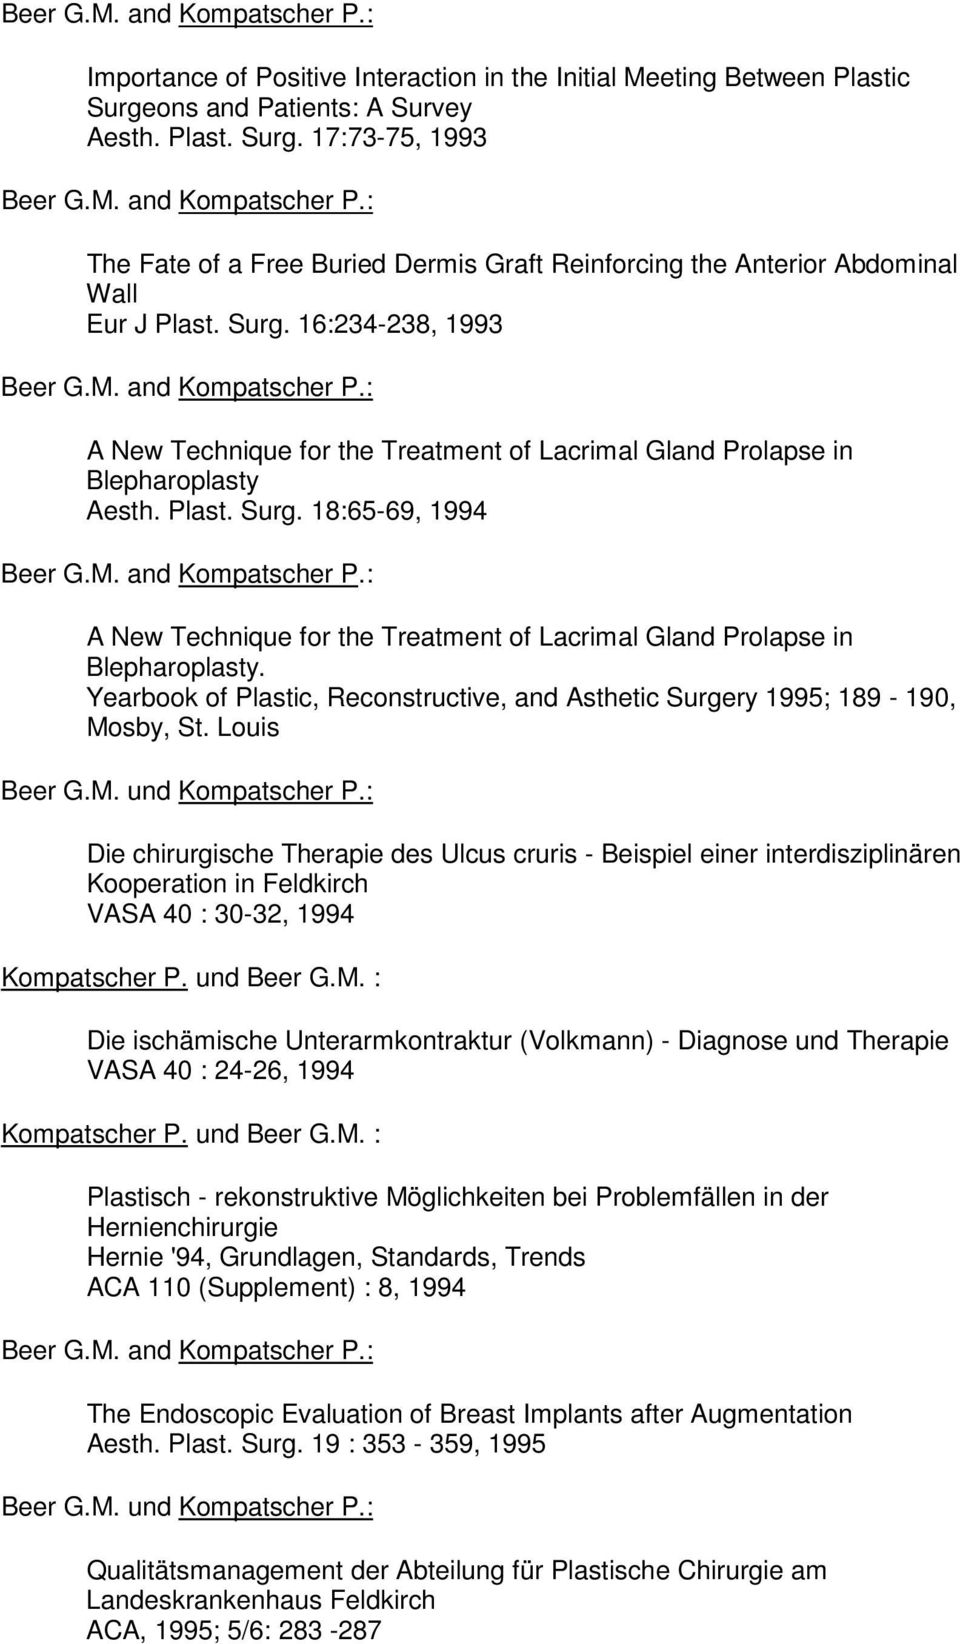 18:65-69, 1994 A New Technique for the Treatment of Lacrimal Gland Prolapse in Blepharoplasty. Yearbook of Plastic, Reconstructive, and Asthetic Surgery 1995; 189-190, Mosby, St. Louis Beer G.M. und Kompatscher P.